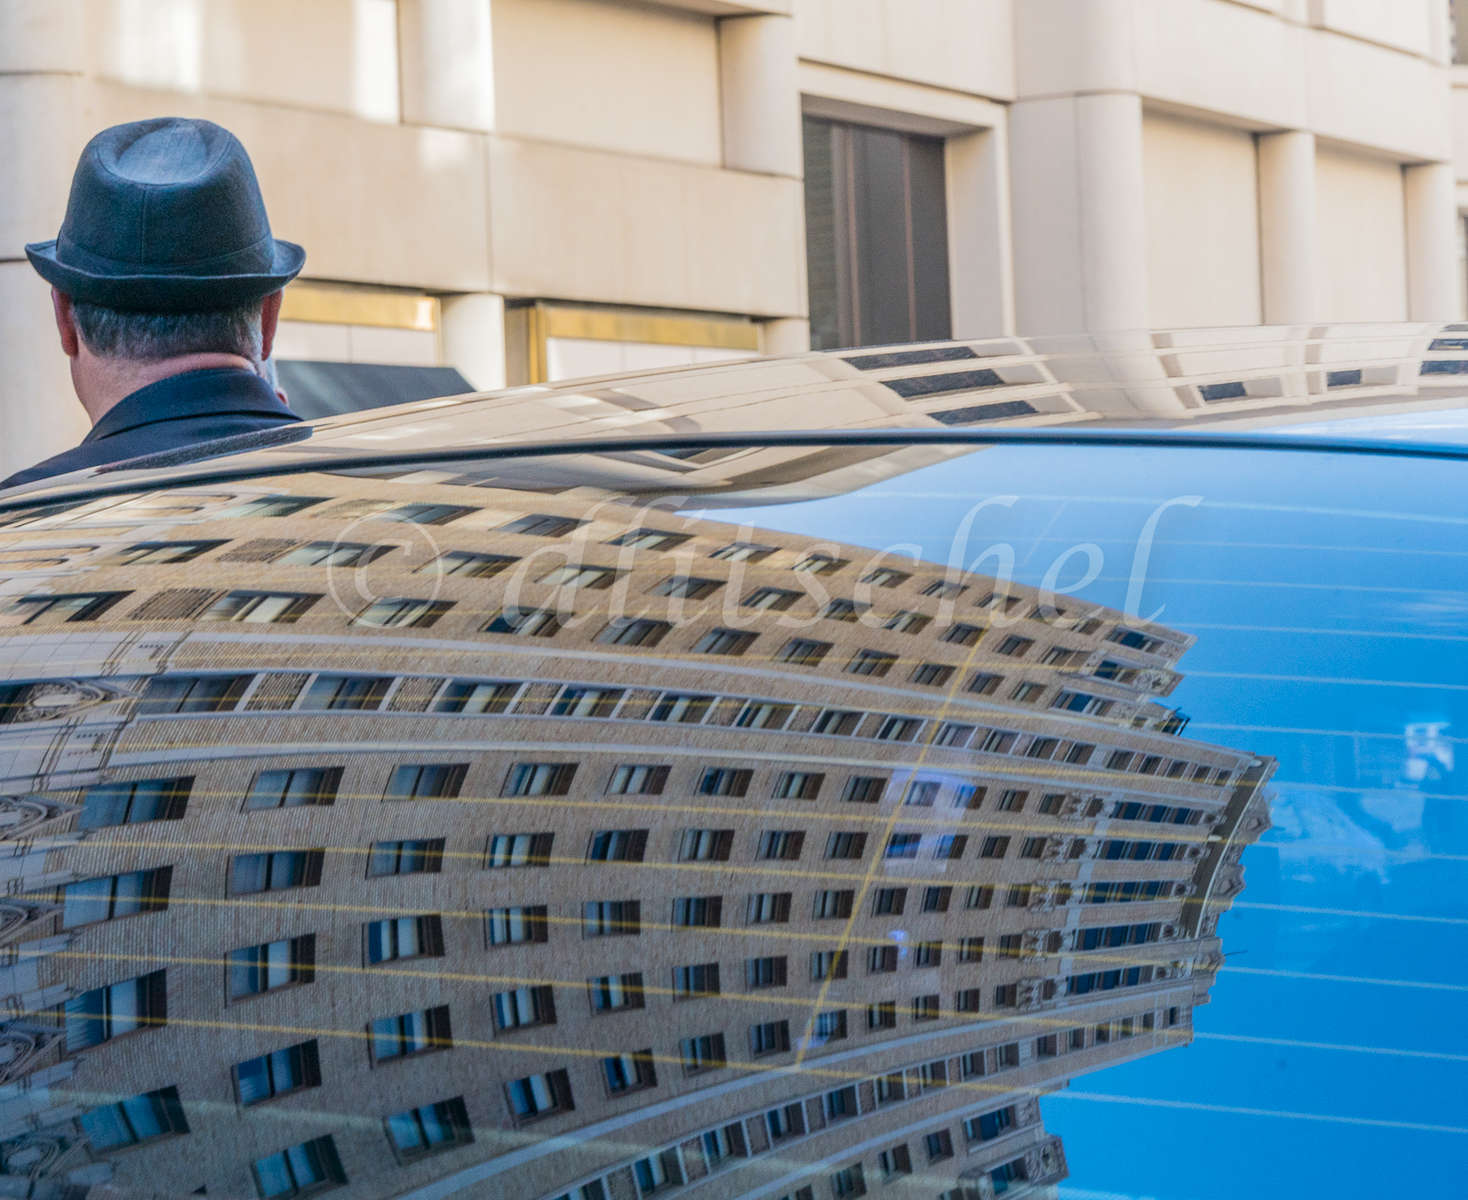 A limousine driver, in a black hat, stands facing away whose head and neck are visible because he is blocked by the rear window of his limo. The window reflects the high-rise buildings on Powell St. in San Francisco.